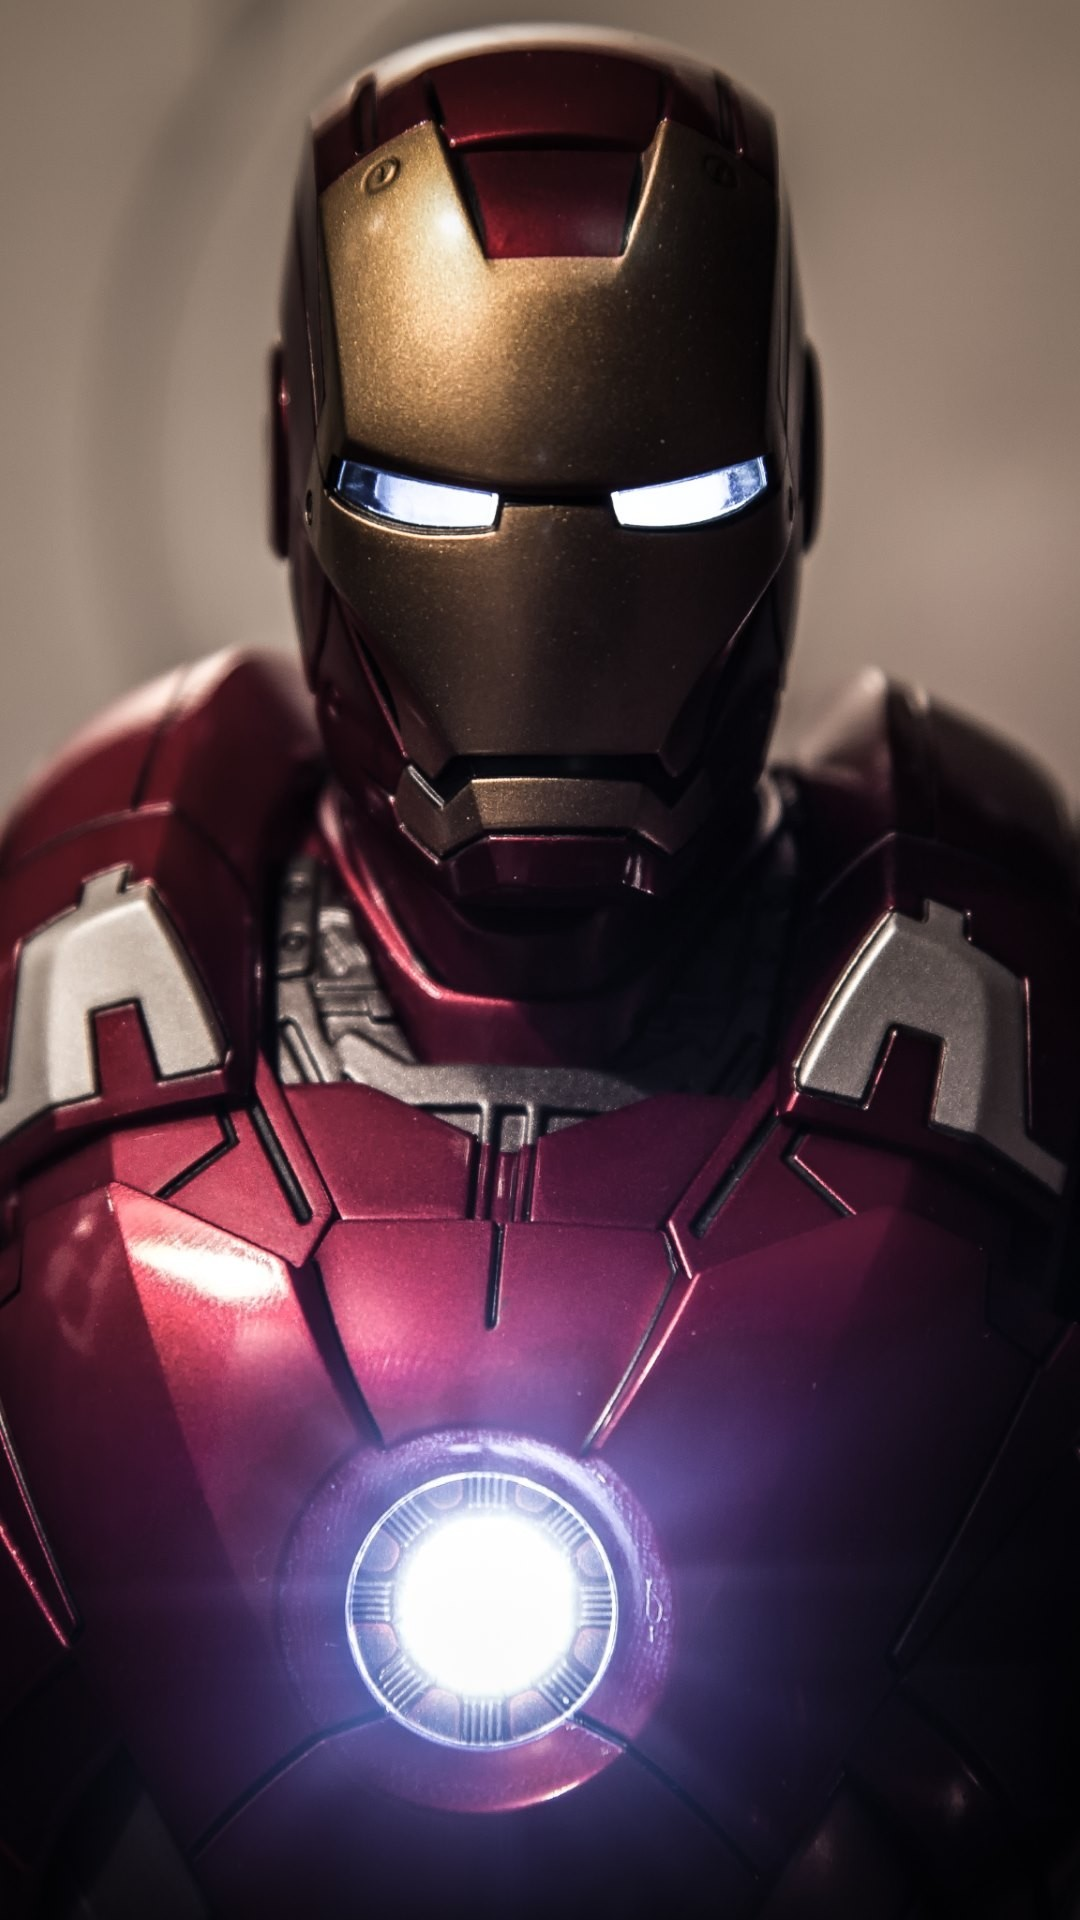 Ironman HD Wallpapers For OnePlus 3